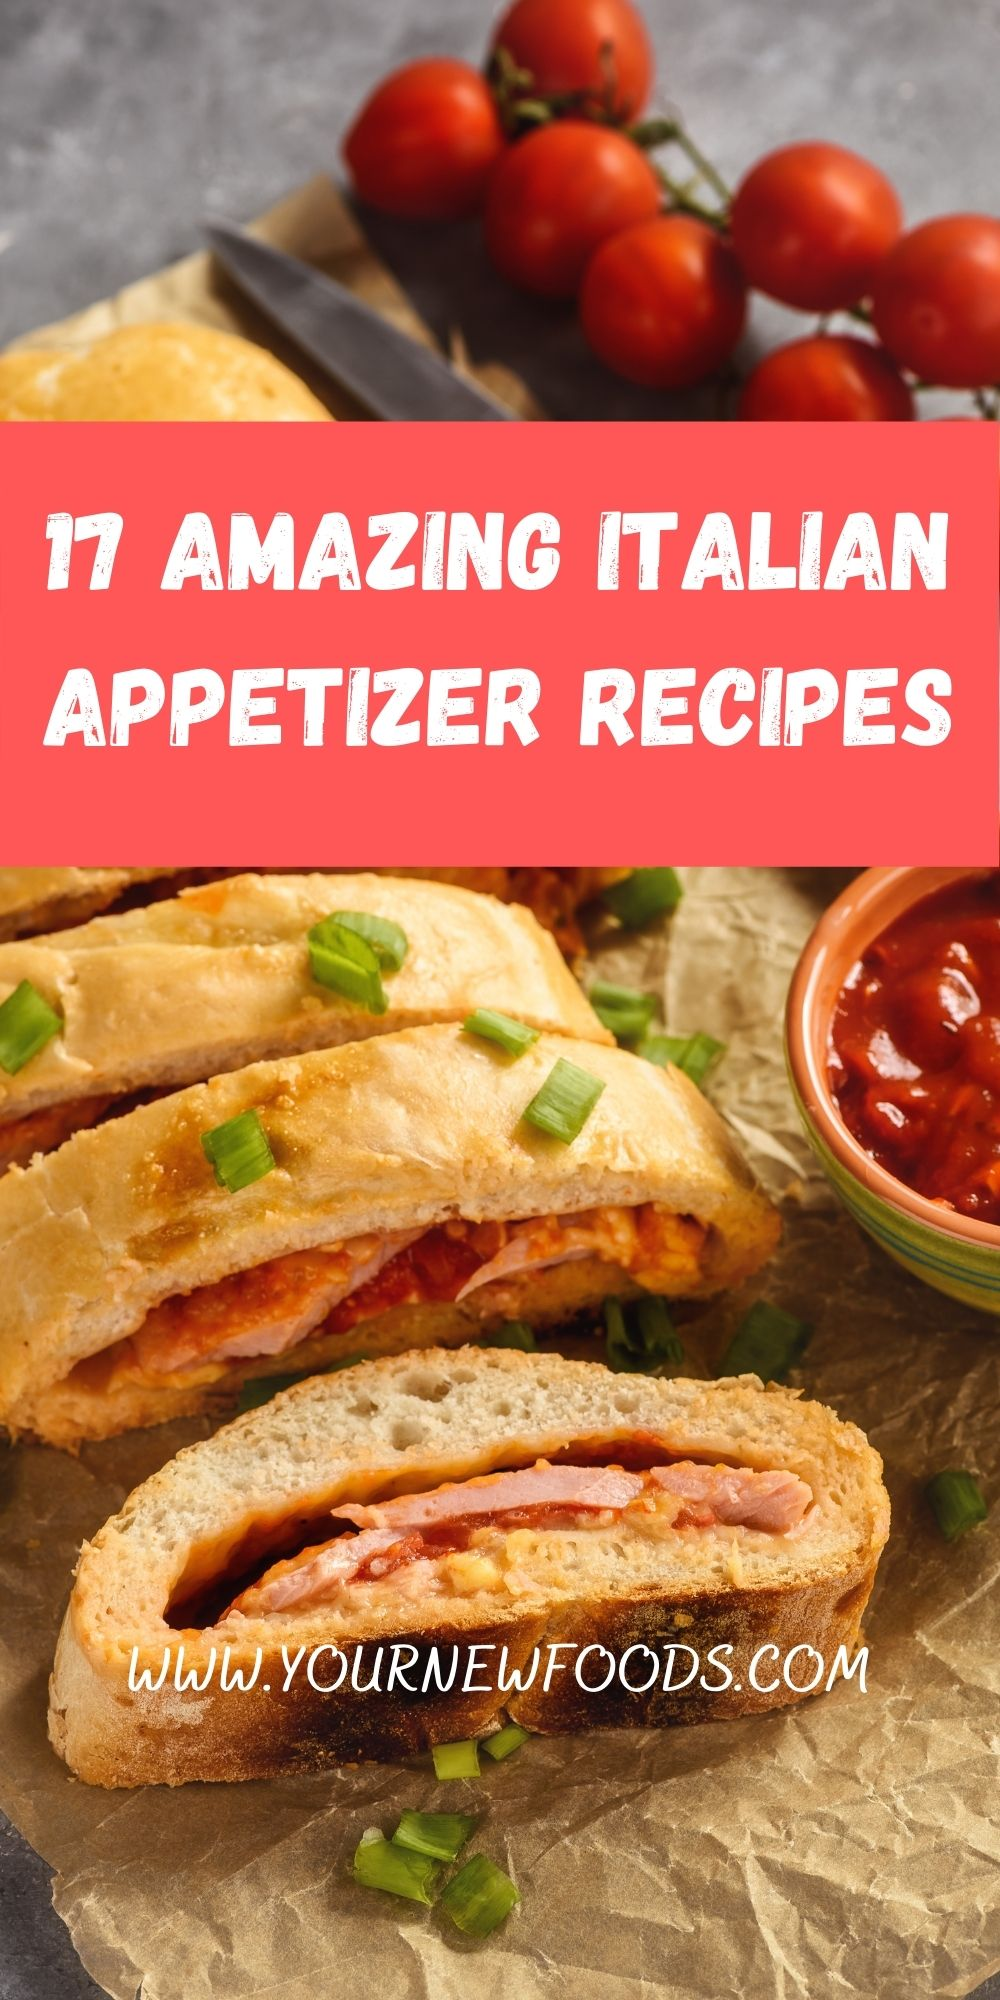 banner advertising Italian appetizers with sliced Stromboli on a wooden chopping board